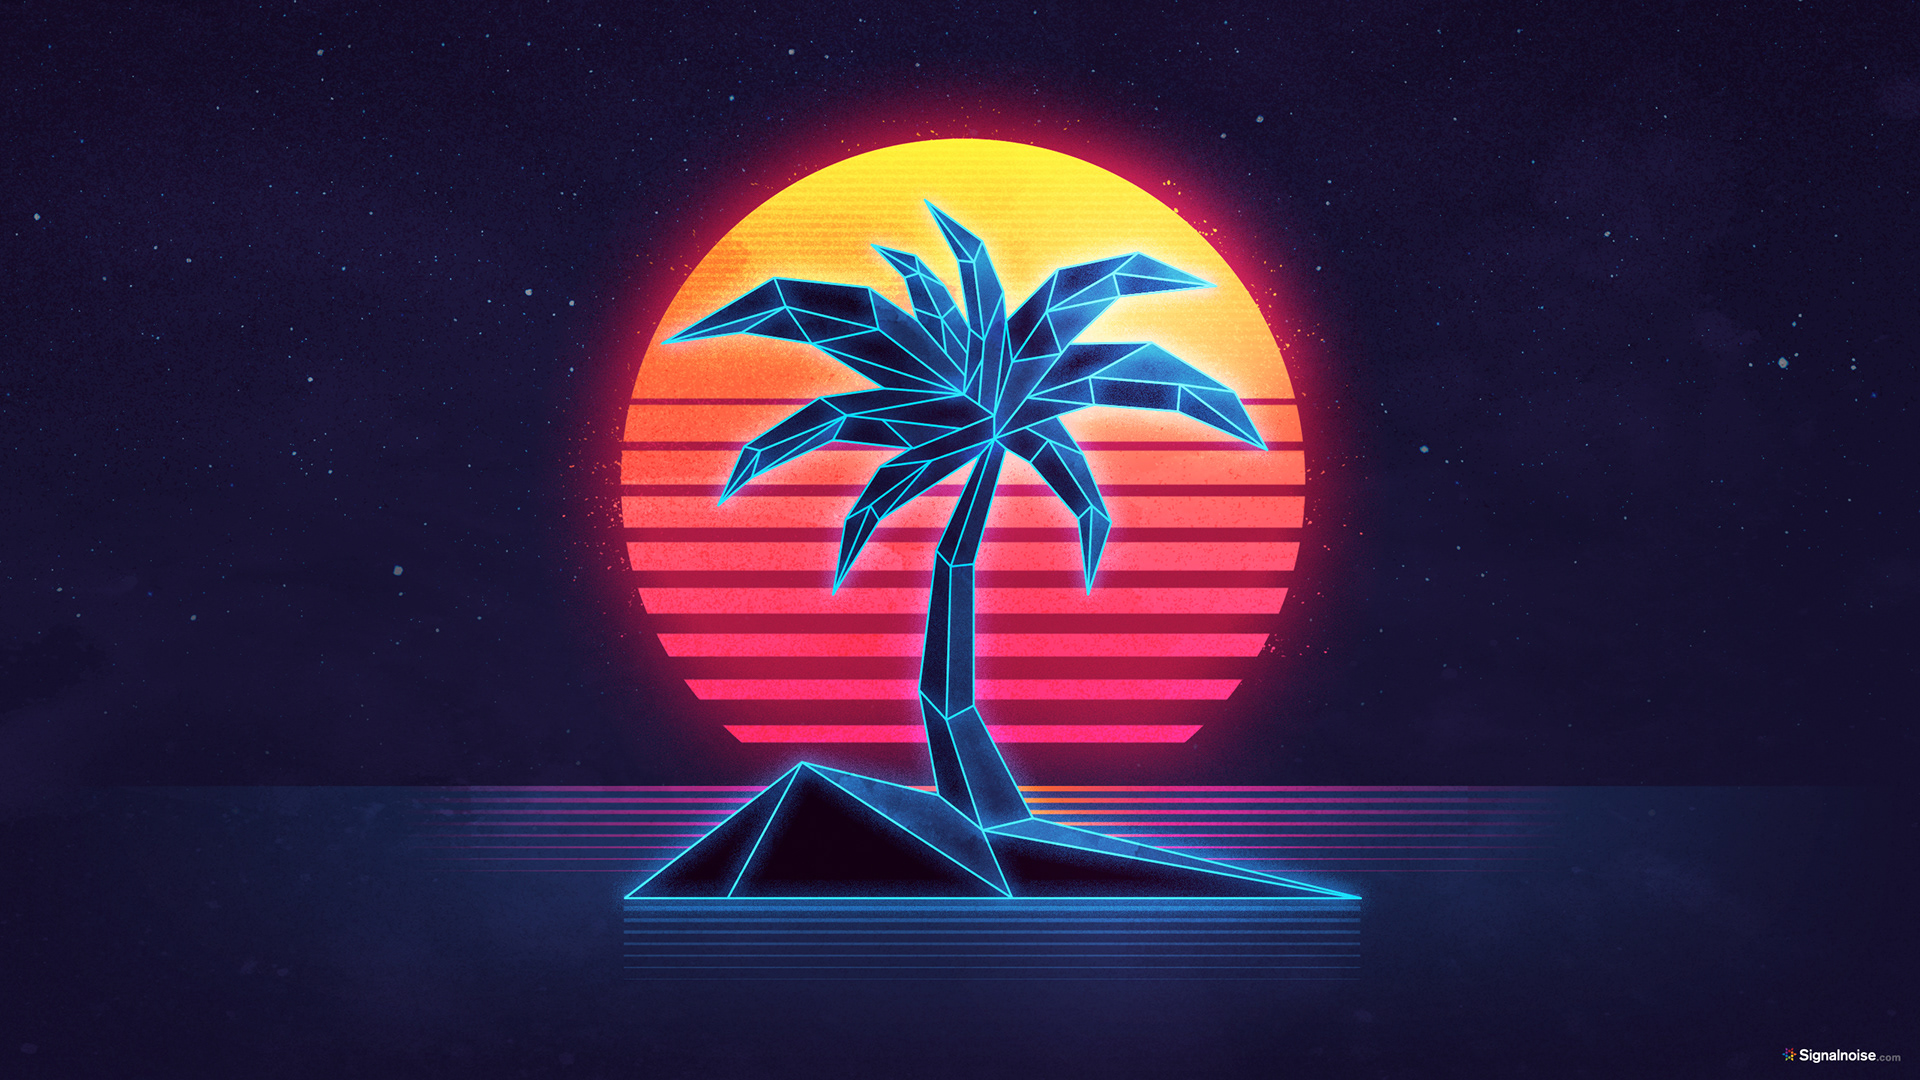 Retro Iphone 6 Wallpaper Hd: Signalnoise :: The Work Of James White